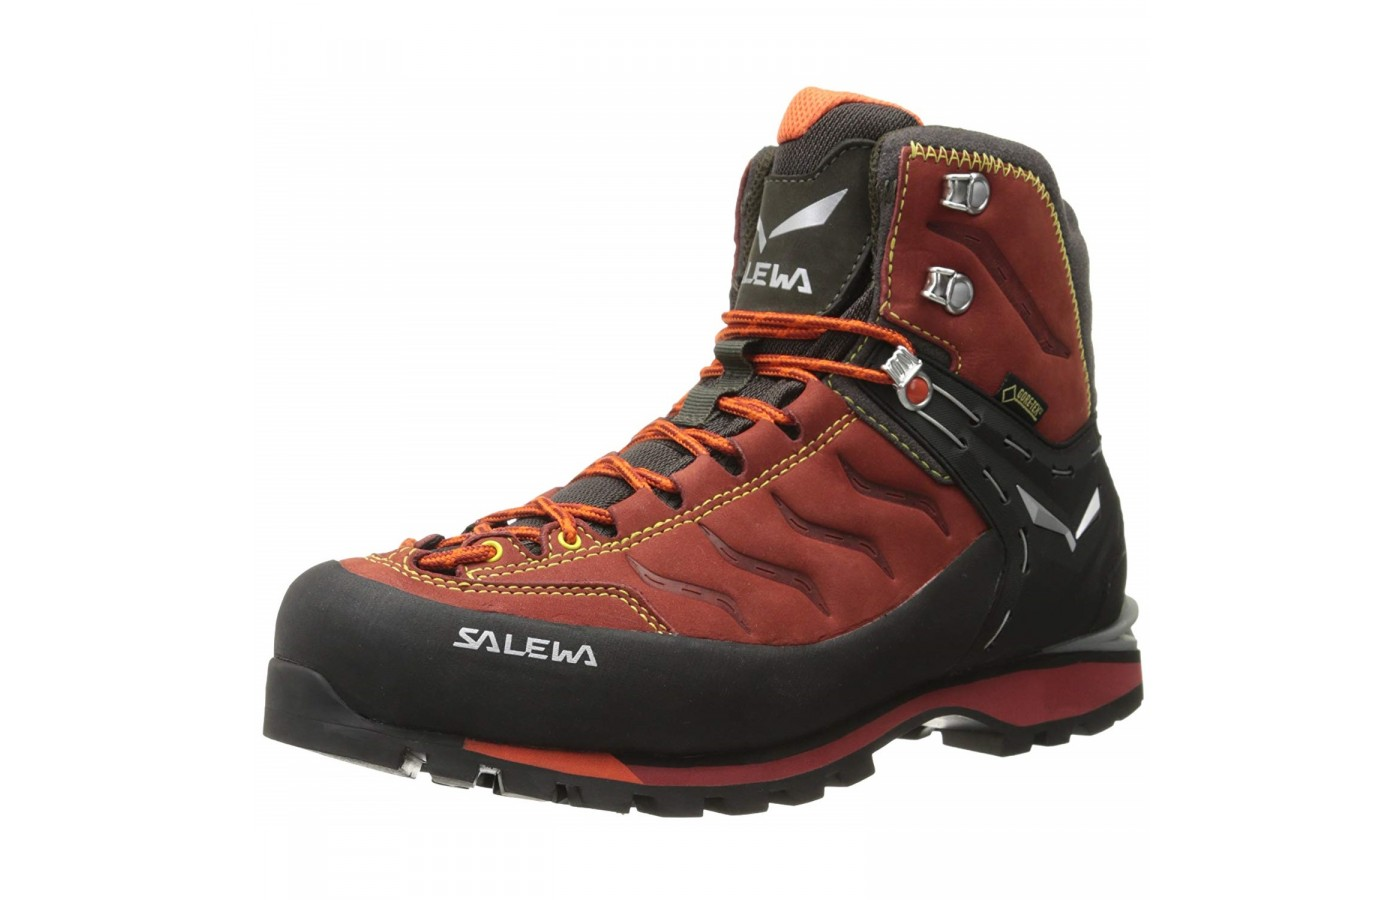 The Salewa Rapace GTX offers a highly wear-resistant fabric in order to keep feet cool and dry.